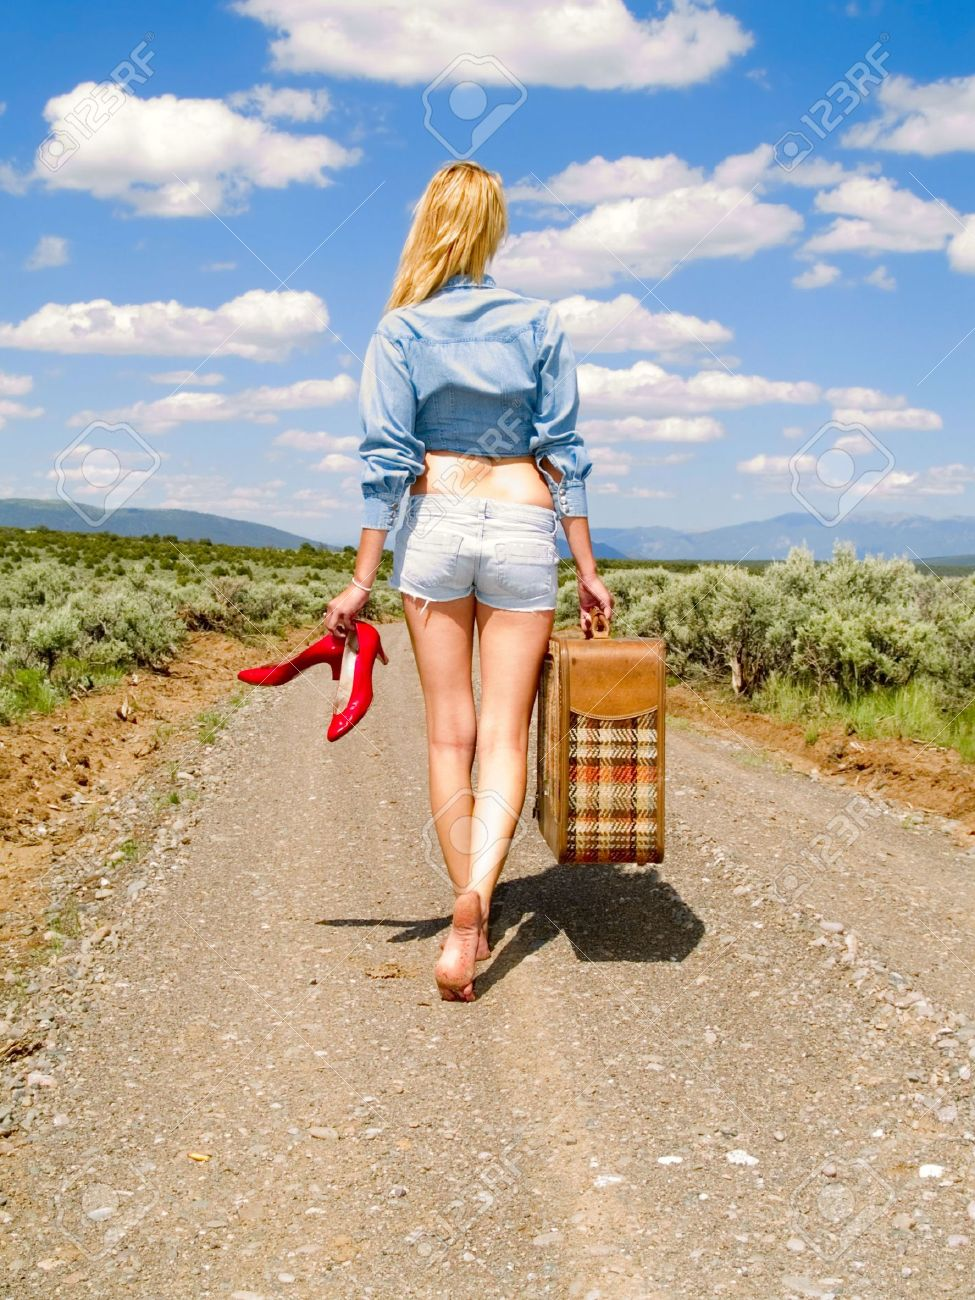 Girl walking on a dirt road barefoot with a suitcase carrying her red shoes Stock Photo - 5946510